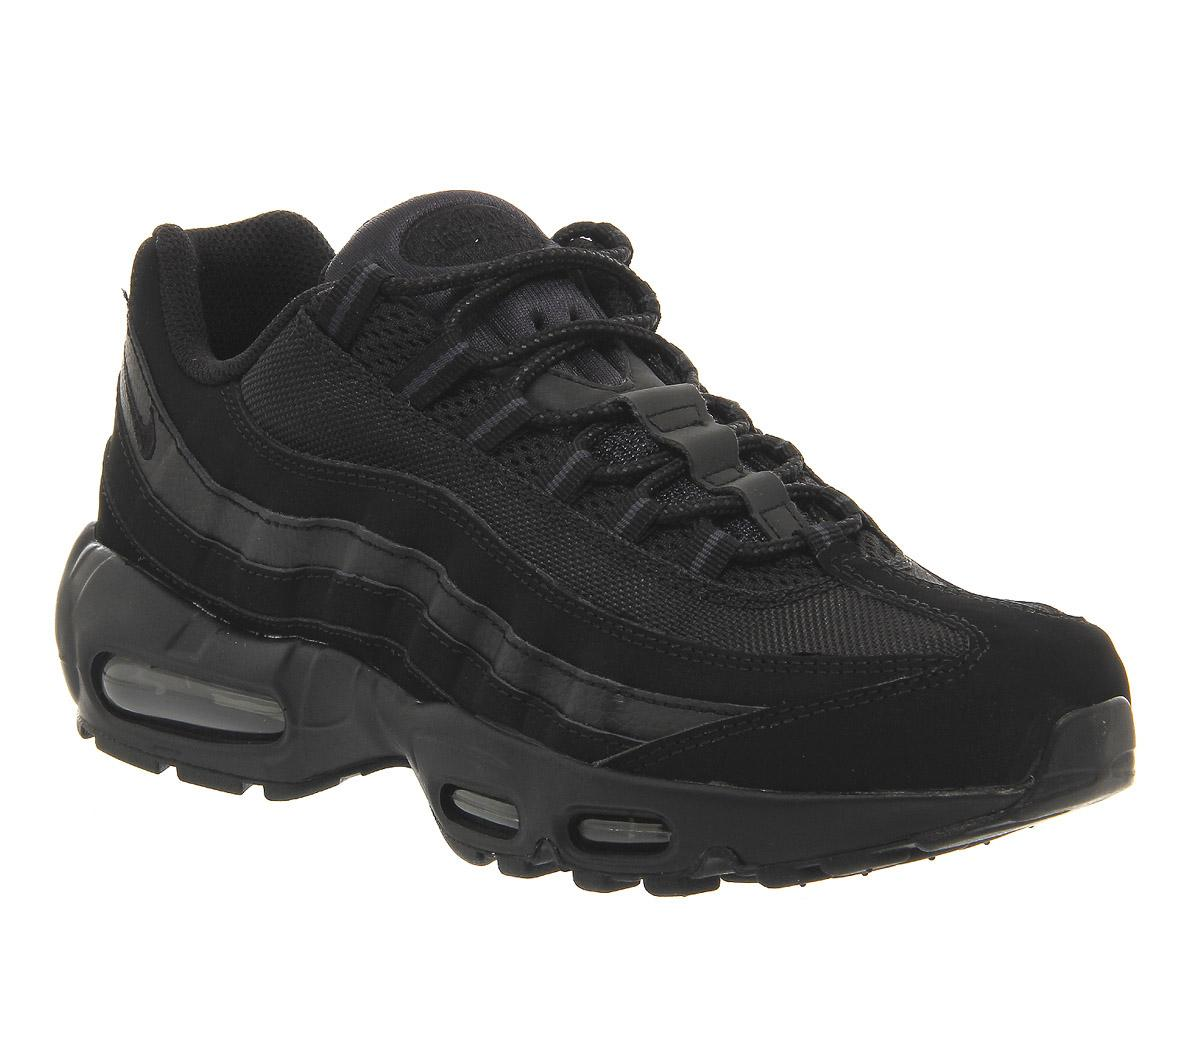 Affordable Most Wanted Nike Air Max 95 Trainers Women